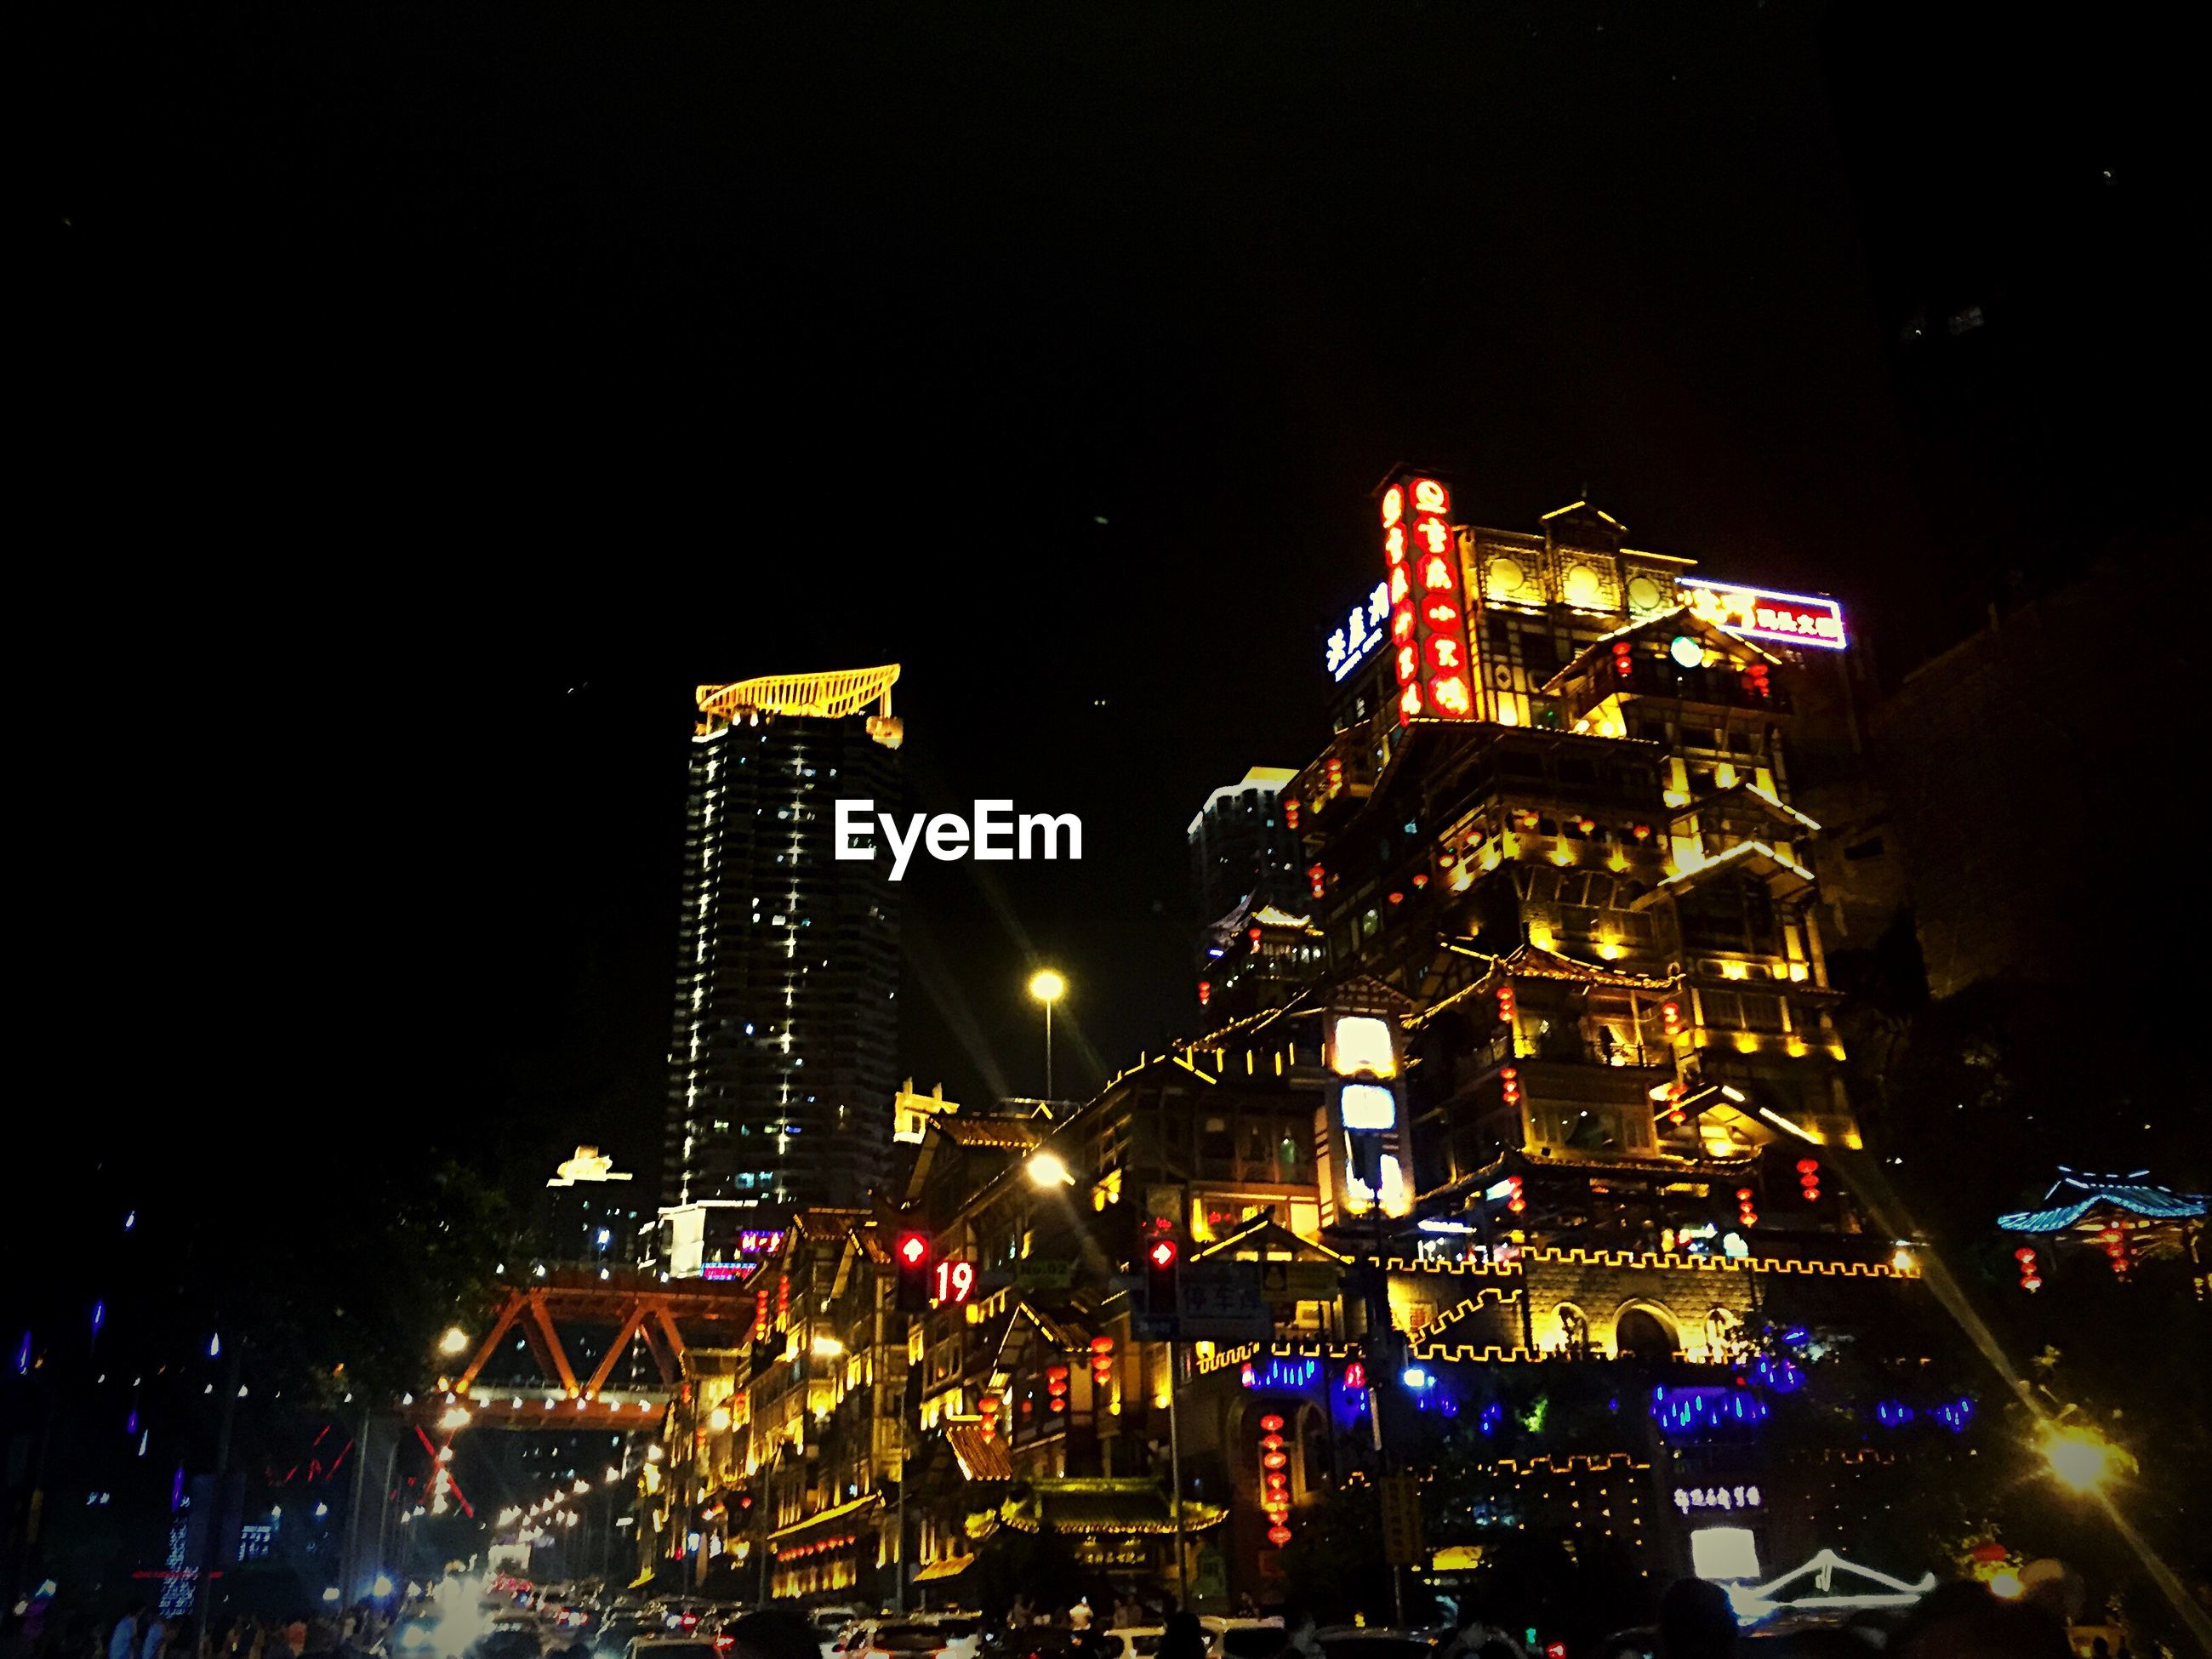 illuminated, night, building exterior, city, built structure, architecture, lighting equipment, sky, copy space, clear sky, light - natural phenomenon, cityscape, development, outdoors, arts culture and entertainment, tall - high, city life, glowing, no people, amusement park